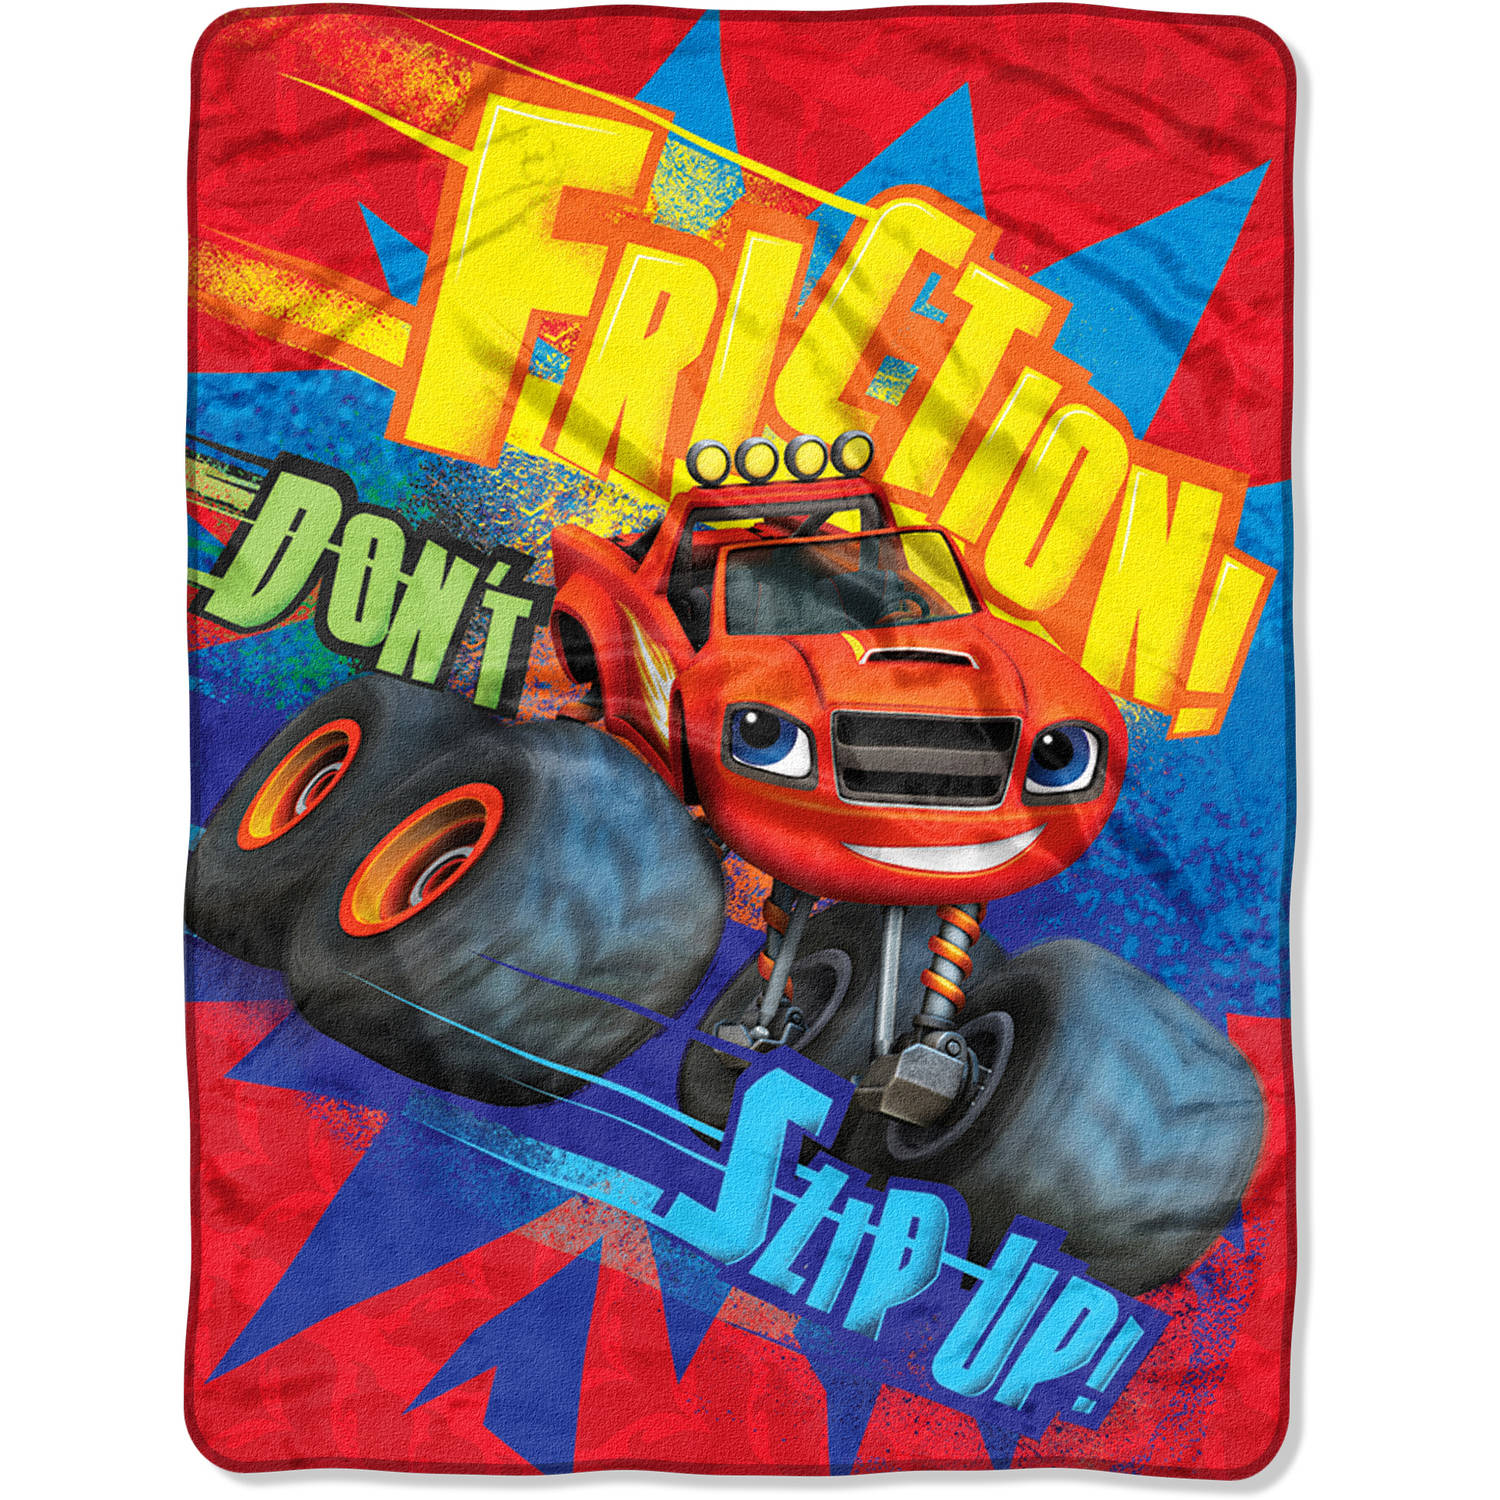 "Nickelodeon's Blaze Fast Furious 46"" x 60"" Micro Raschel Throw"